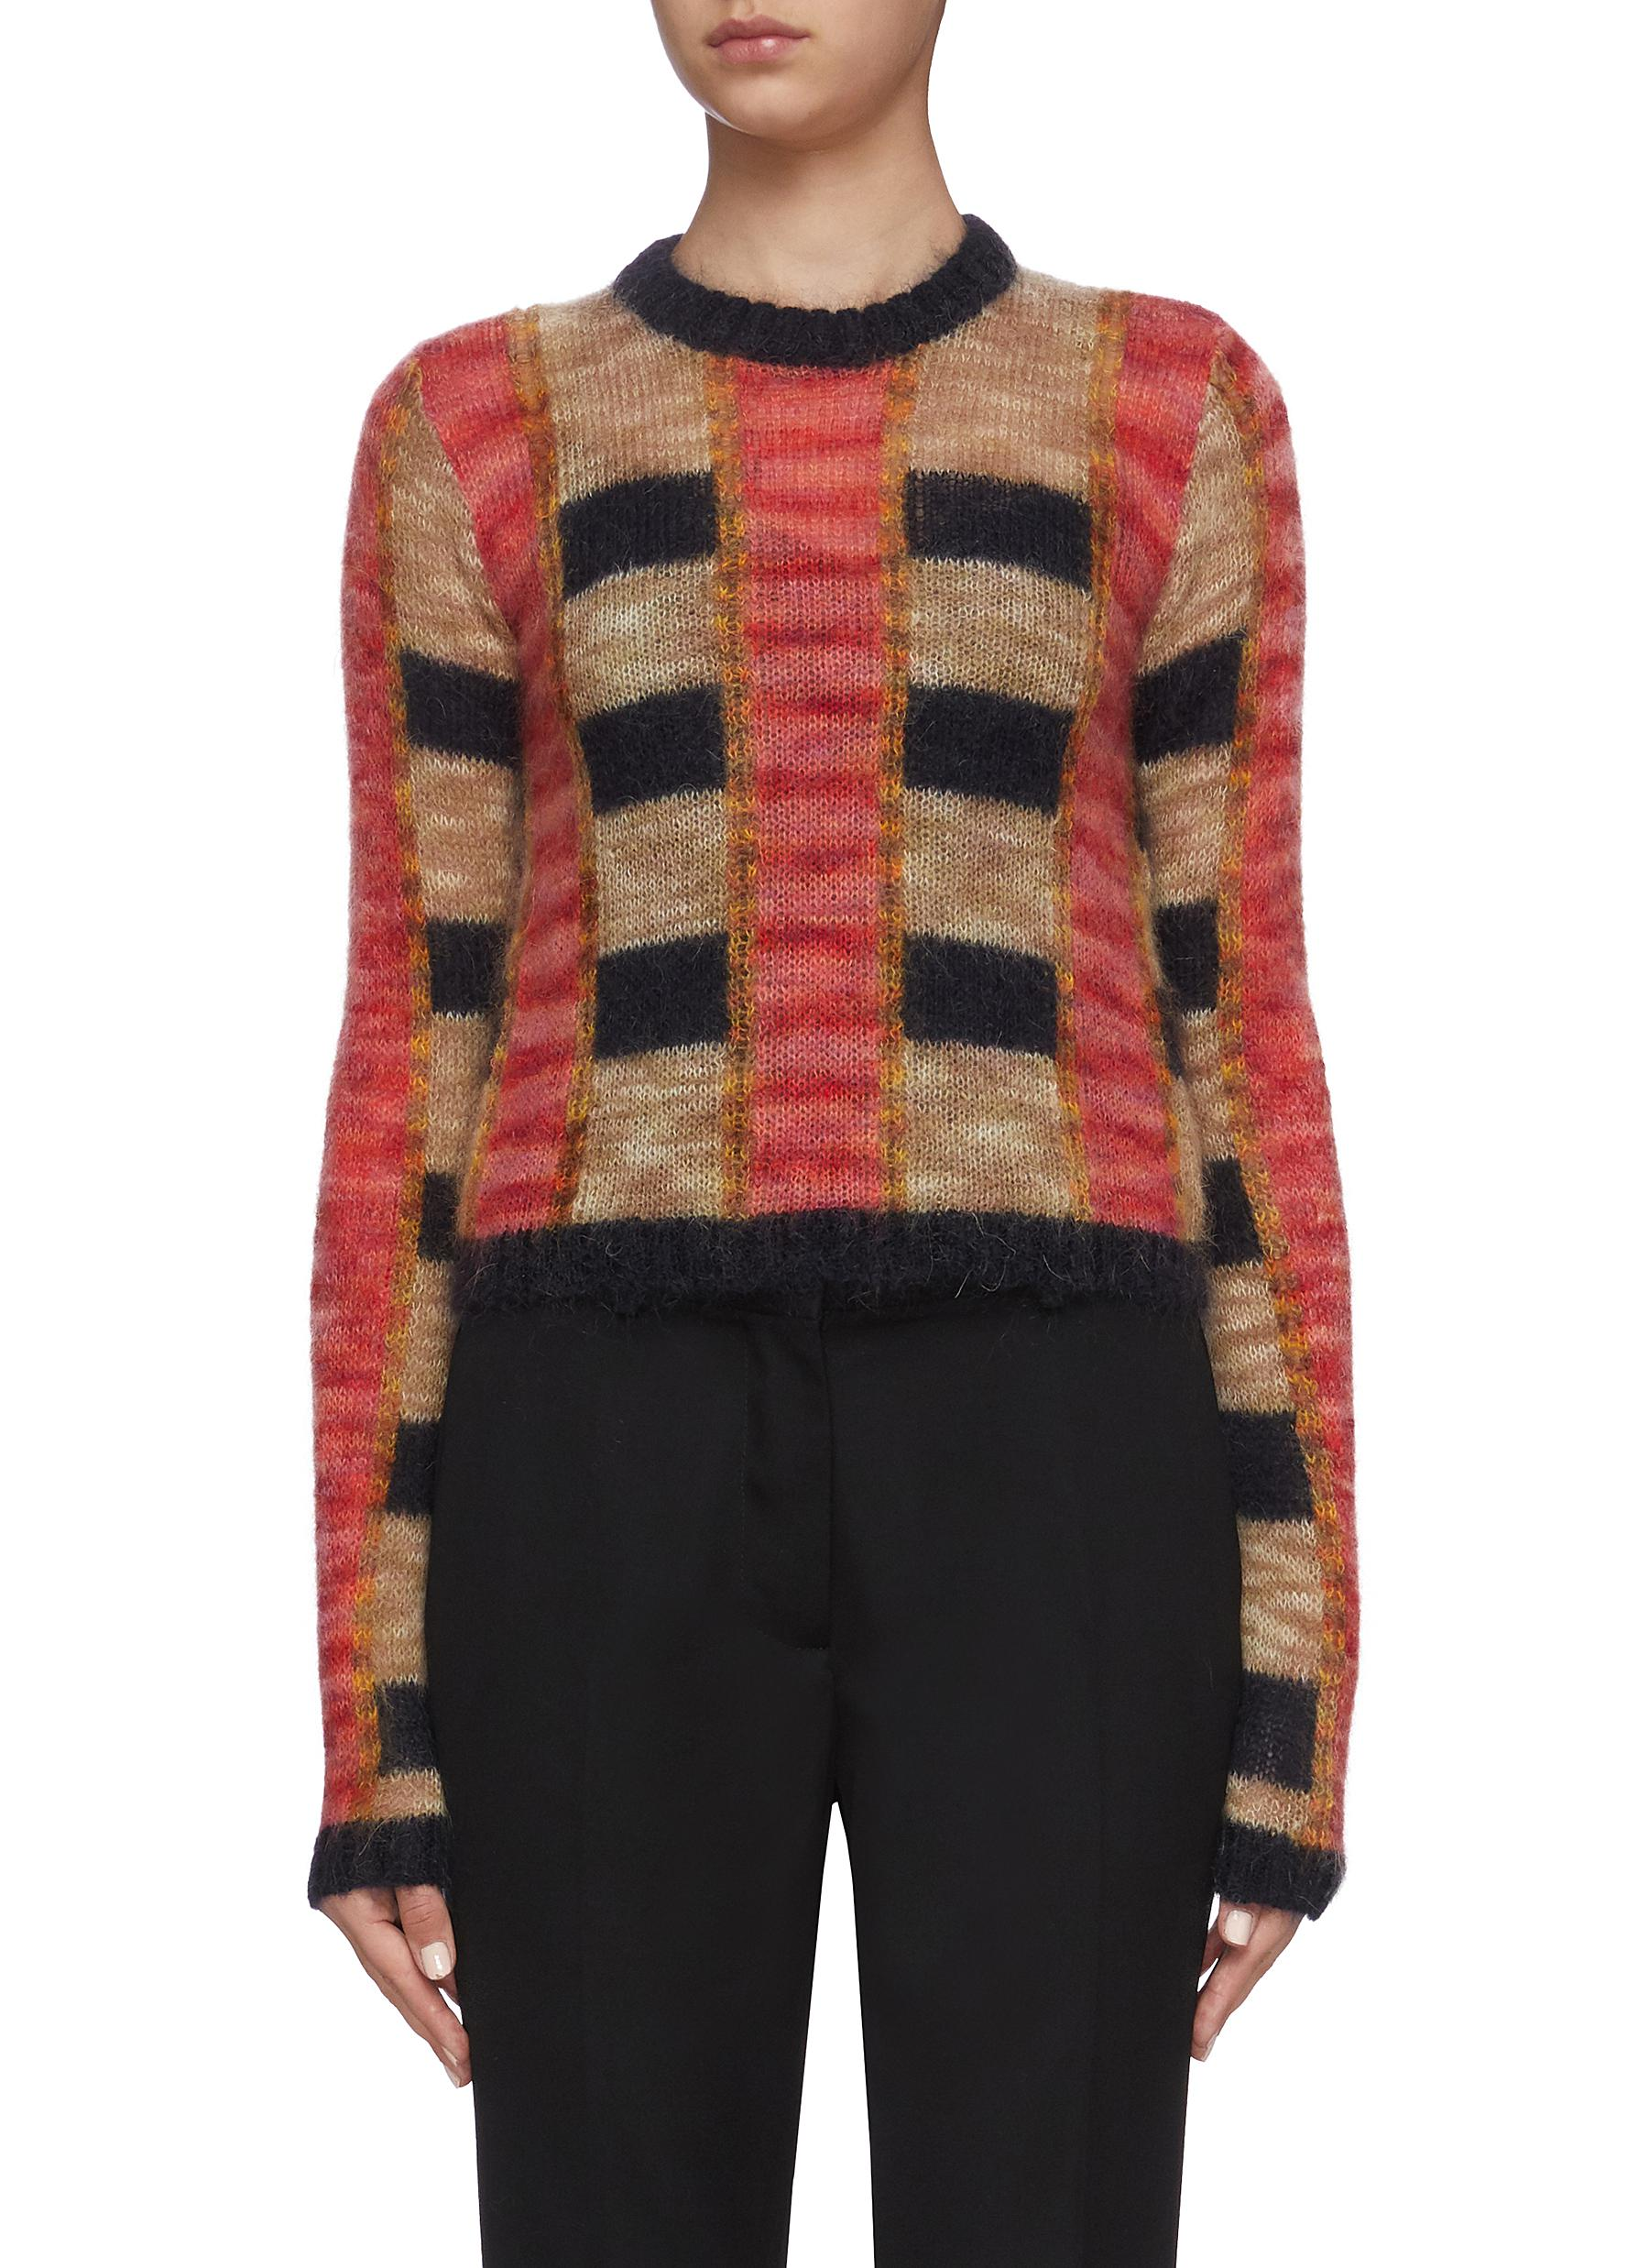 Jw Anderson Knits SLIM FIT CROPPED SWEATER